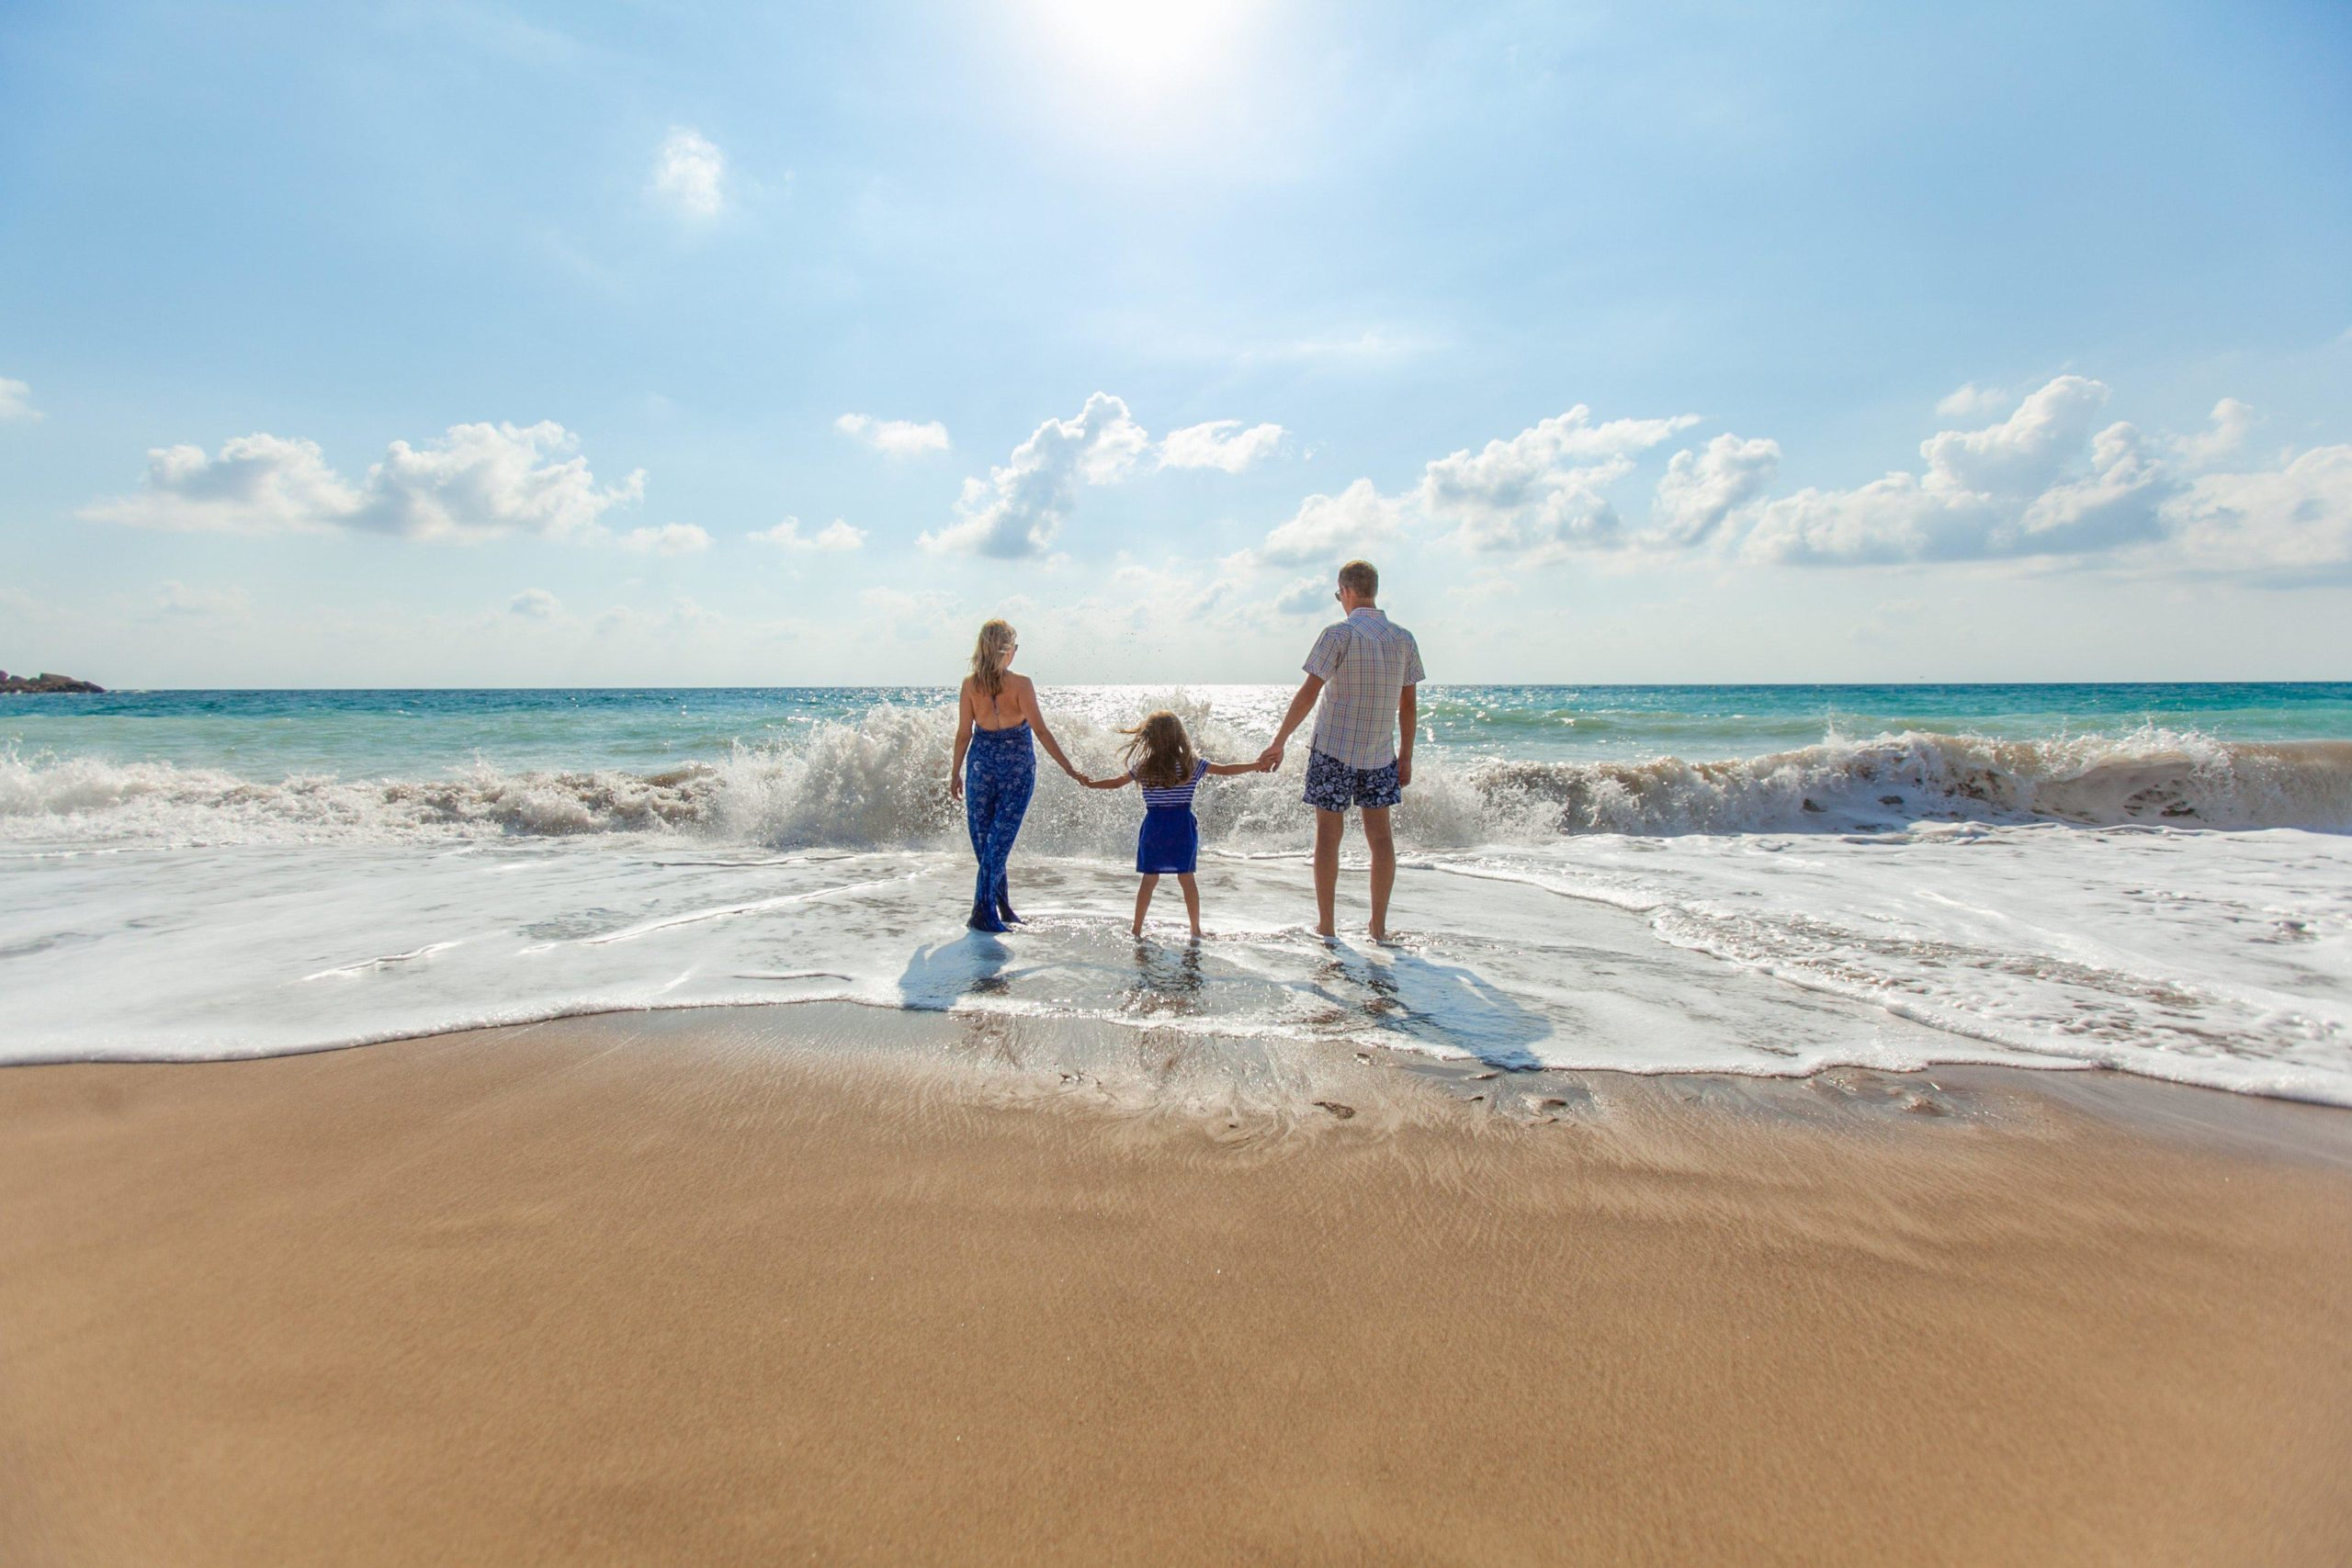 9 Features To Look For When Finding A Family Friendly Hotel